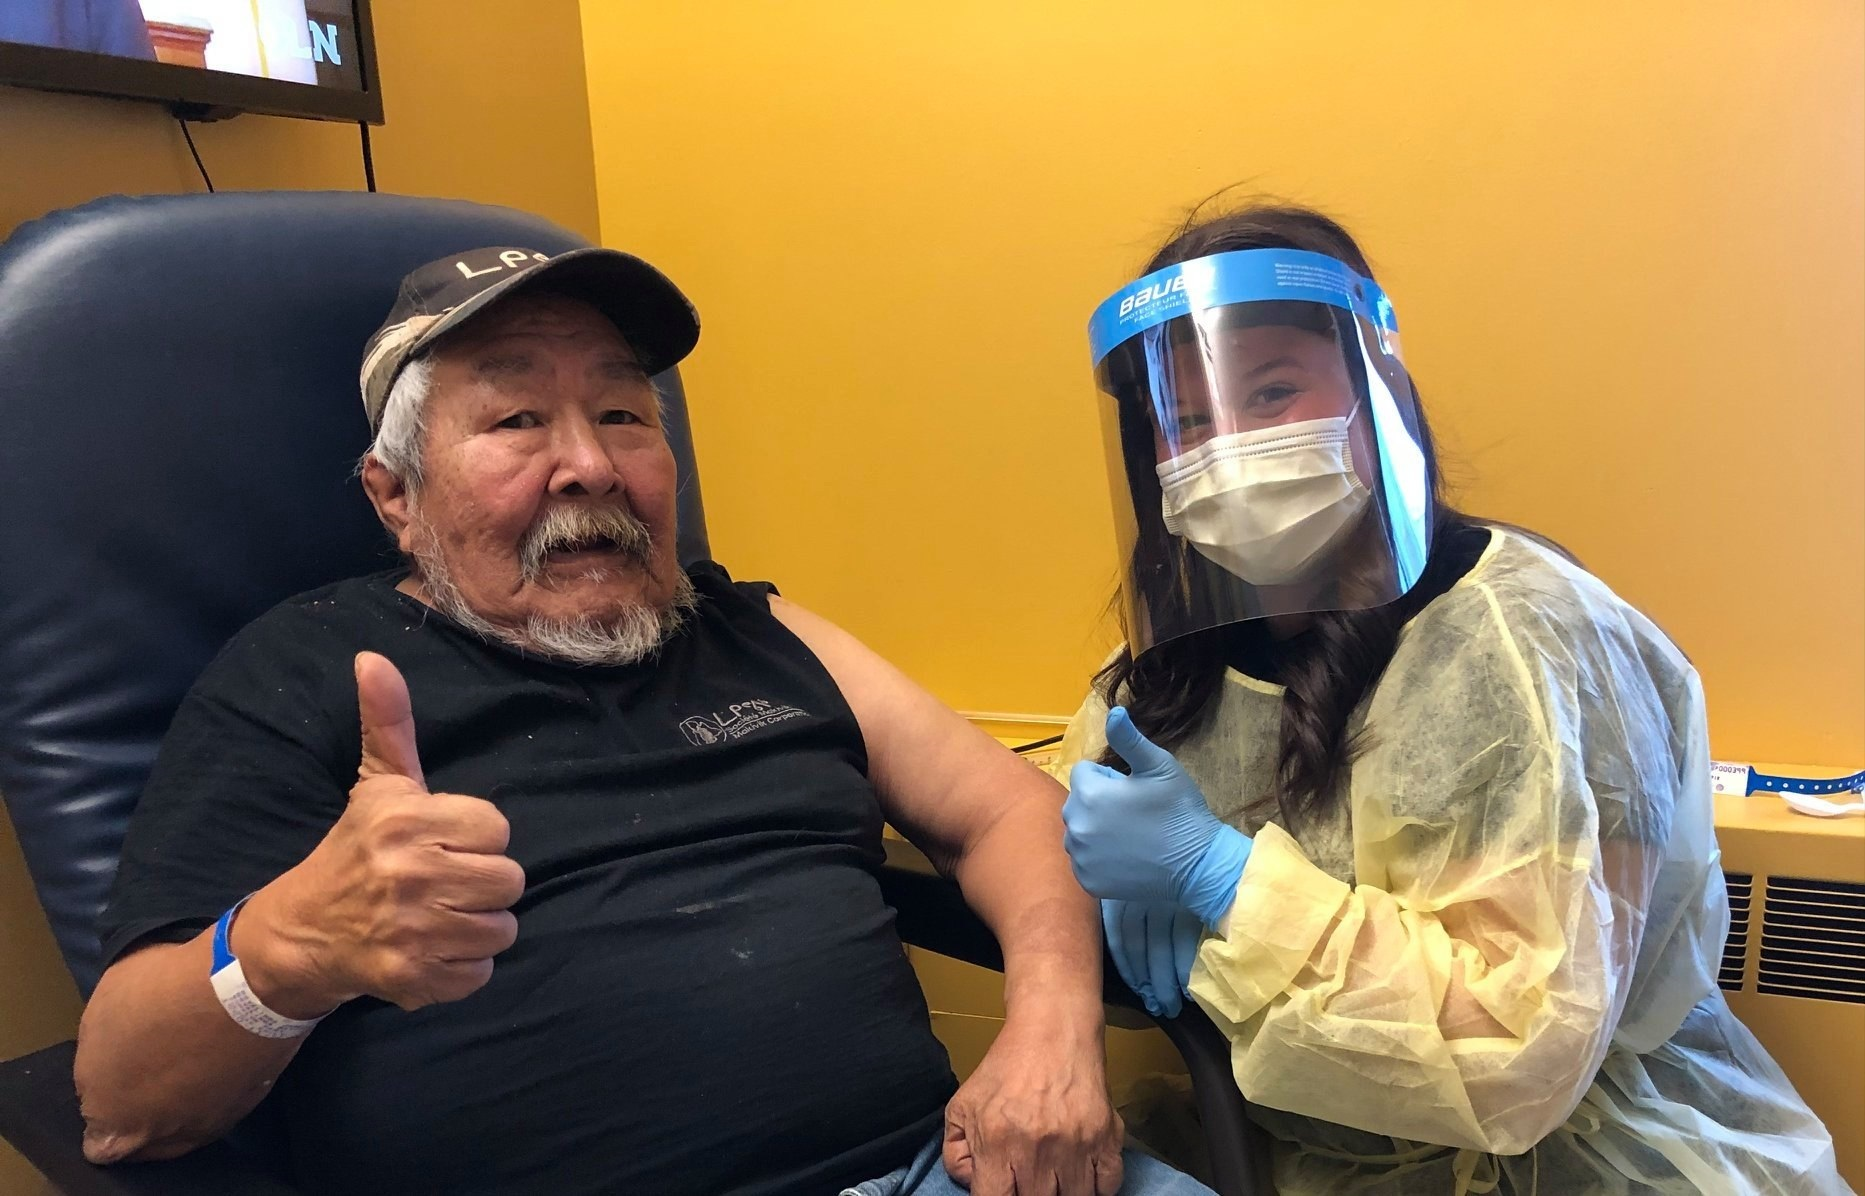 James Novalinga, 70, was the first resident of Puvirnituq to receive the COVID-19 vaccine Jan. 21, administered by nurse Vanessa Asfar at the Inuulitsivik health centre. Last week, Nunavik communities received a portion of the 1,000 shots of Moderna's vaccine shipped to the region. As of Jan. 25, the Nunavik Regional Board of Health and Social Services says 568 people have been immunized. Roughly 85 per cent of those have gone to residents aged 55 and up, while the rest have been given to frontline workers and health-care staff. (Photo courtesy of NRBHSS)